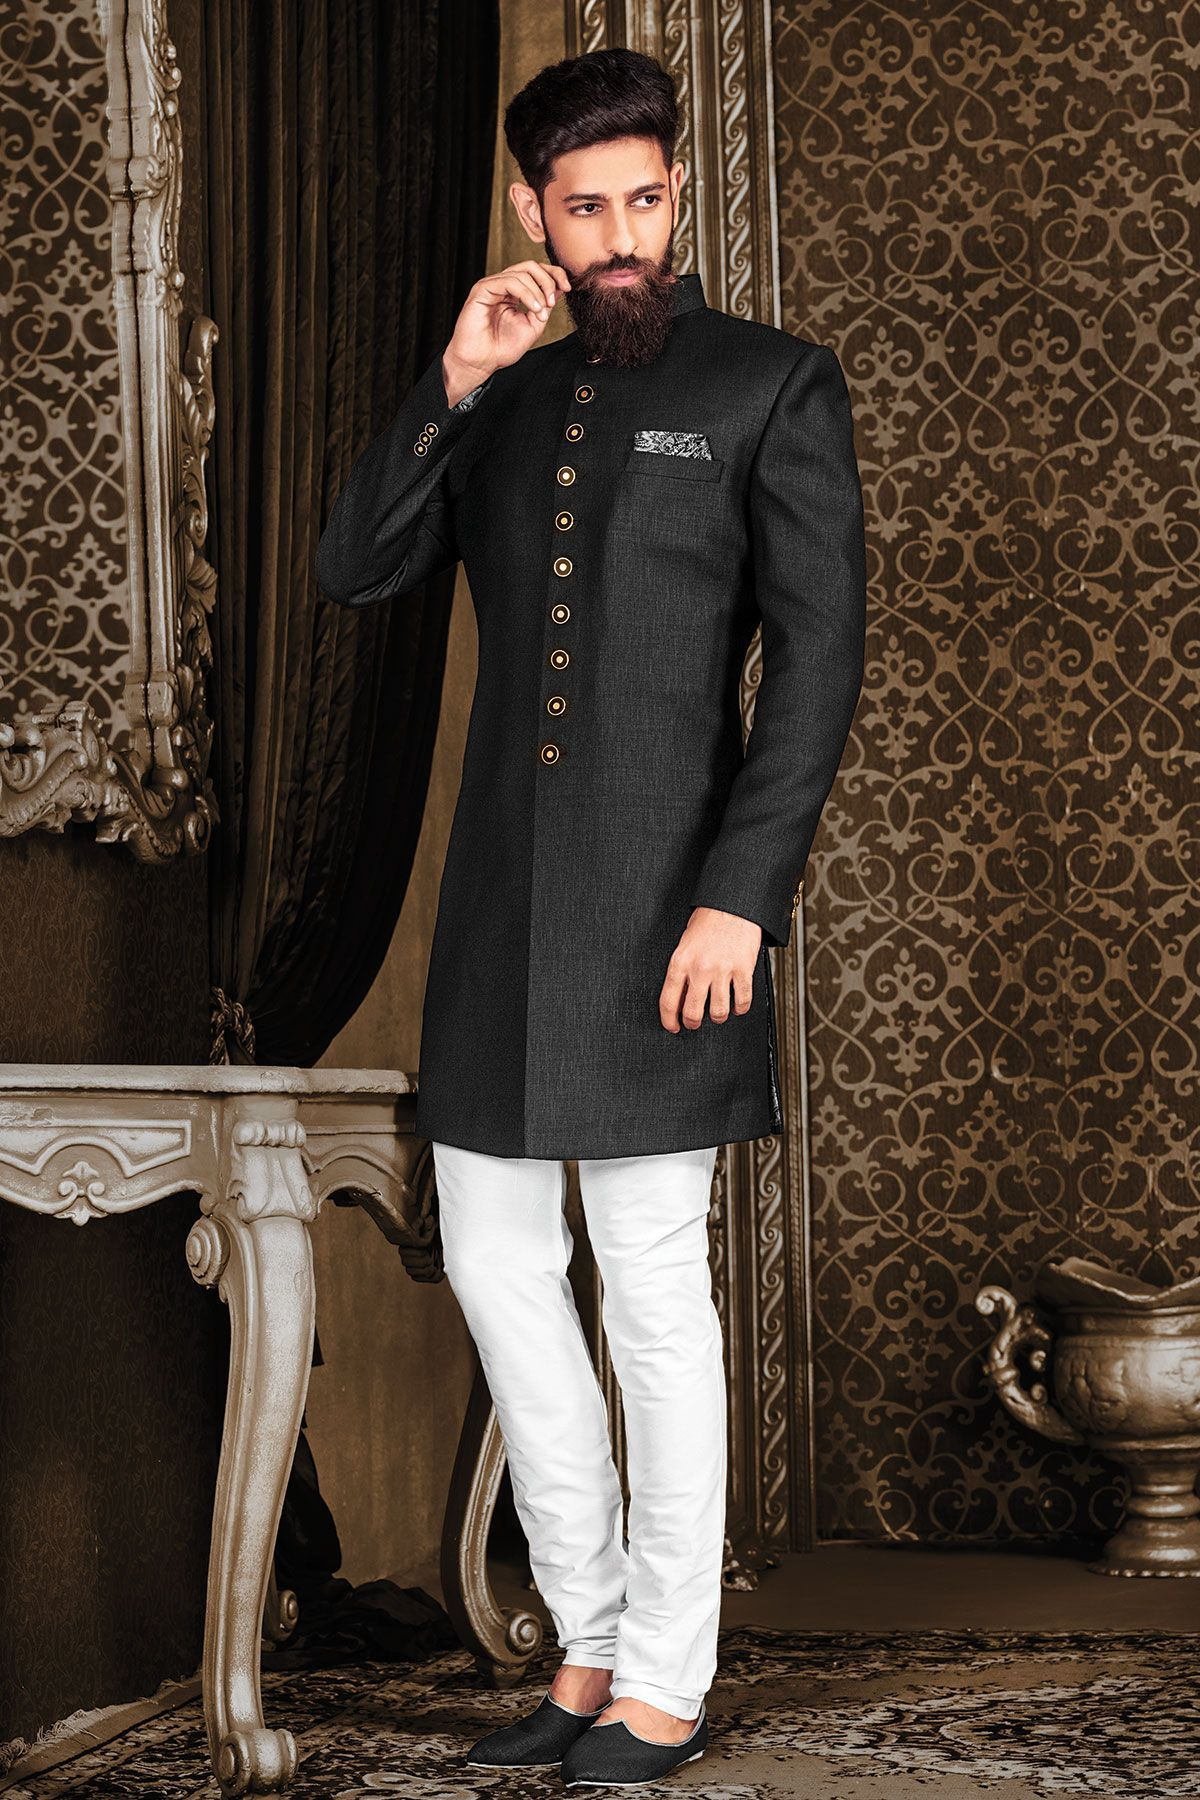 Black italian indowestern sherwaniiw traditional dress